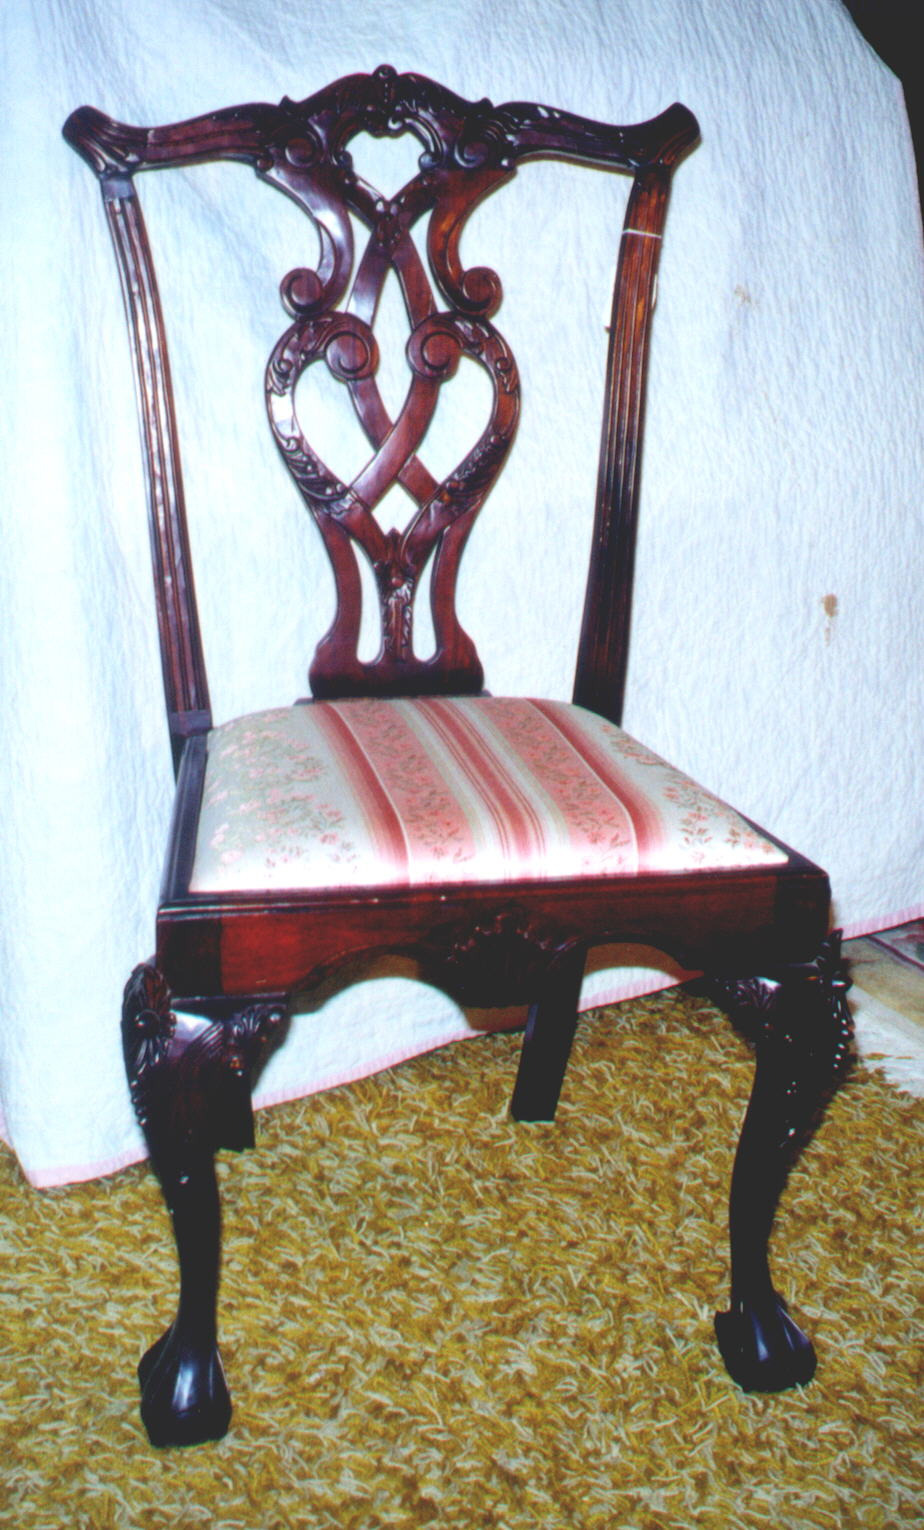 Identifying Antique Furniture Styles Inspirational 19th Century Furniture Bent On Revivals